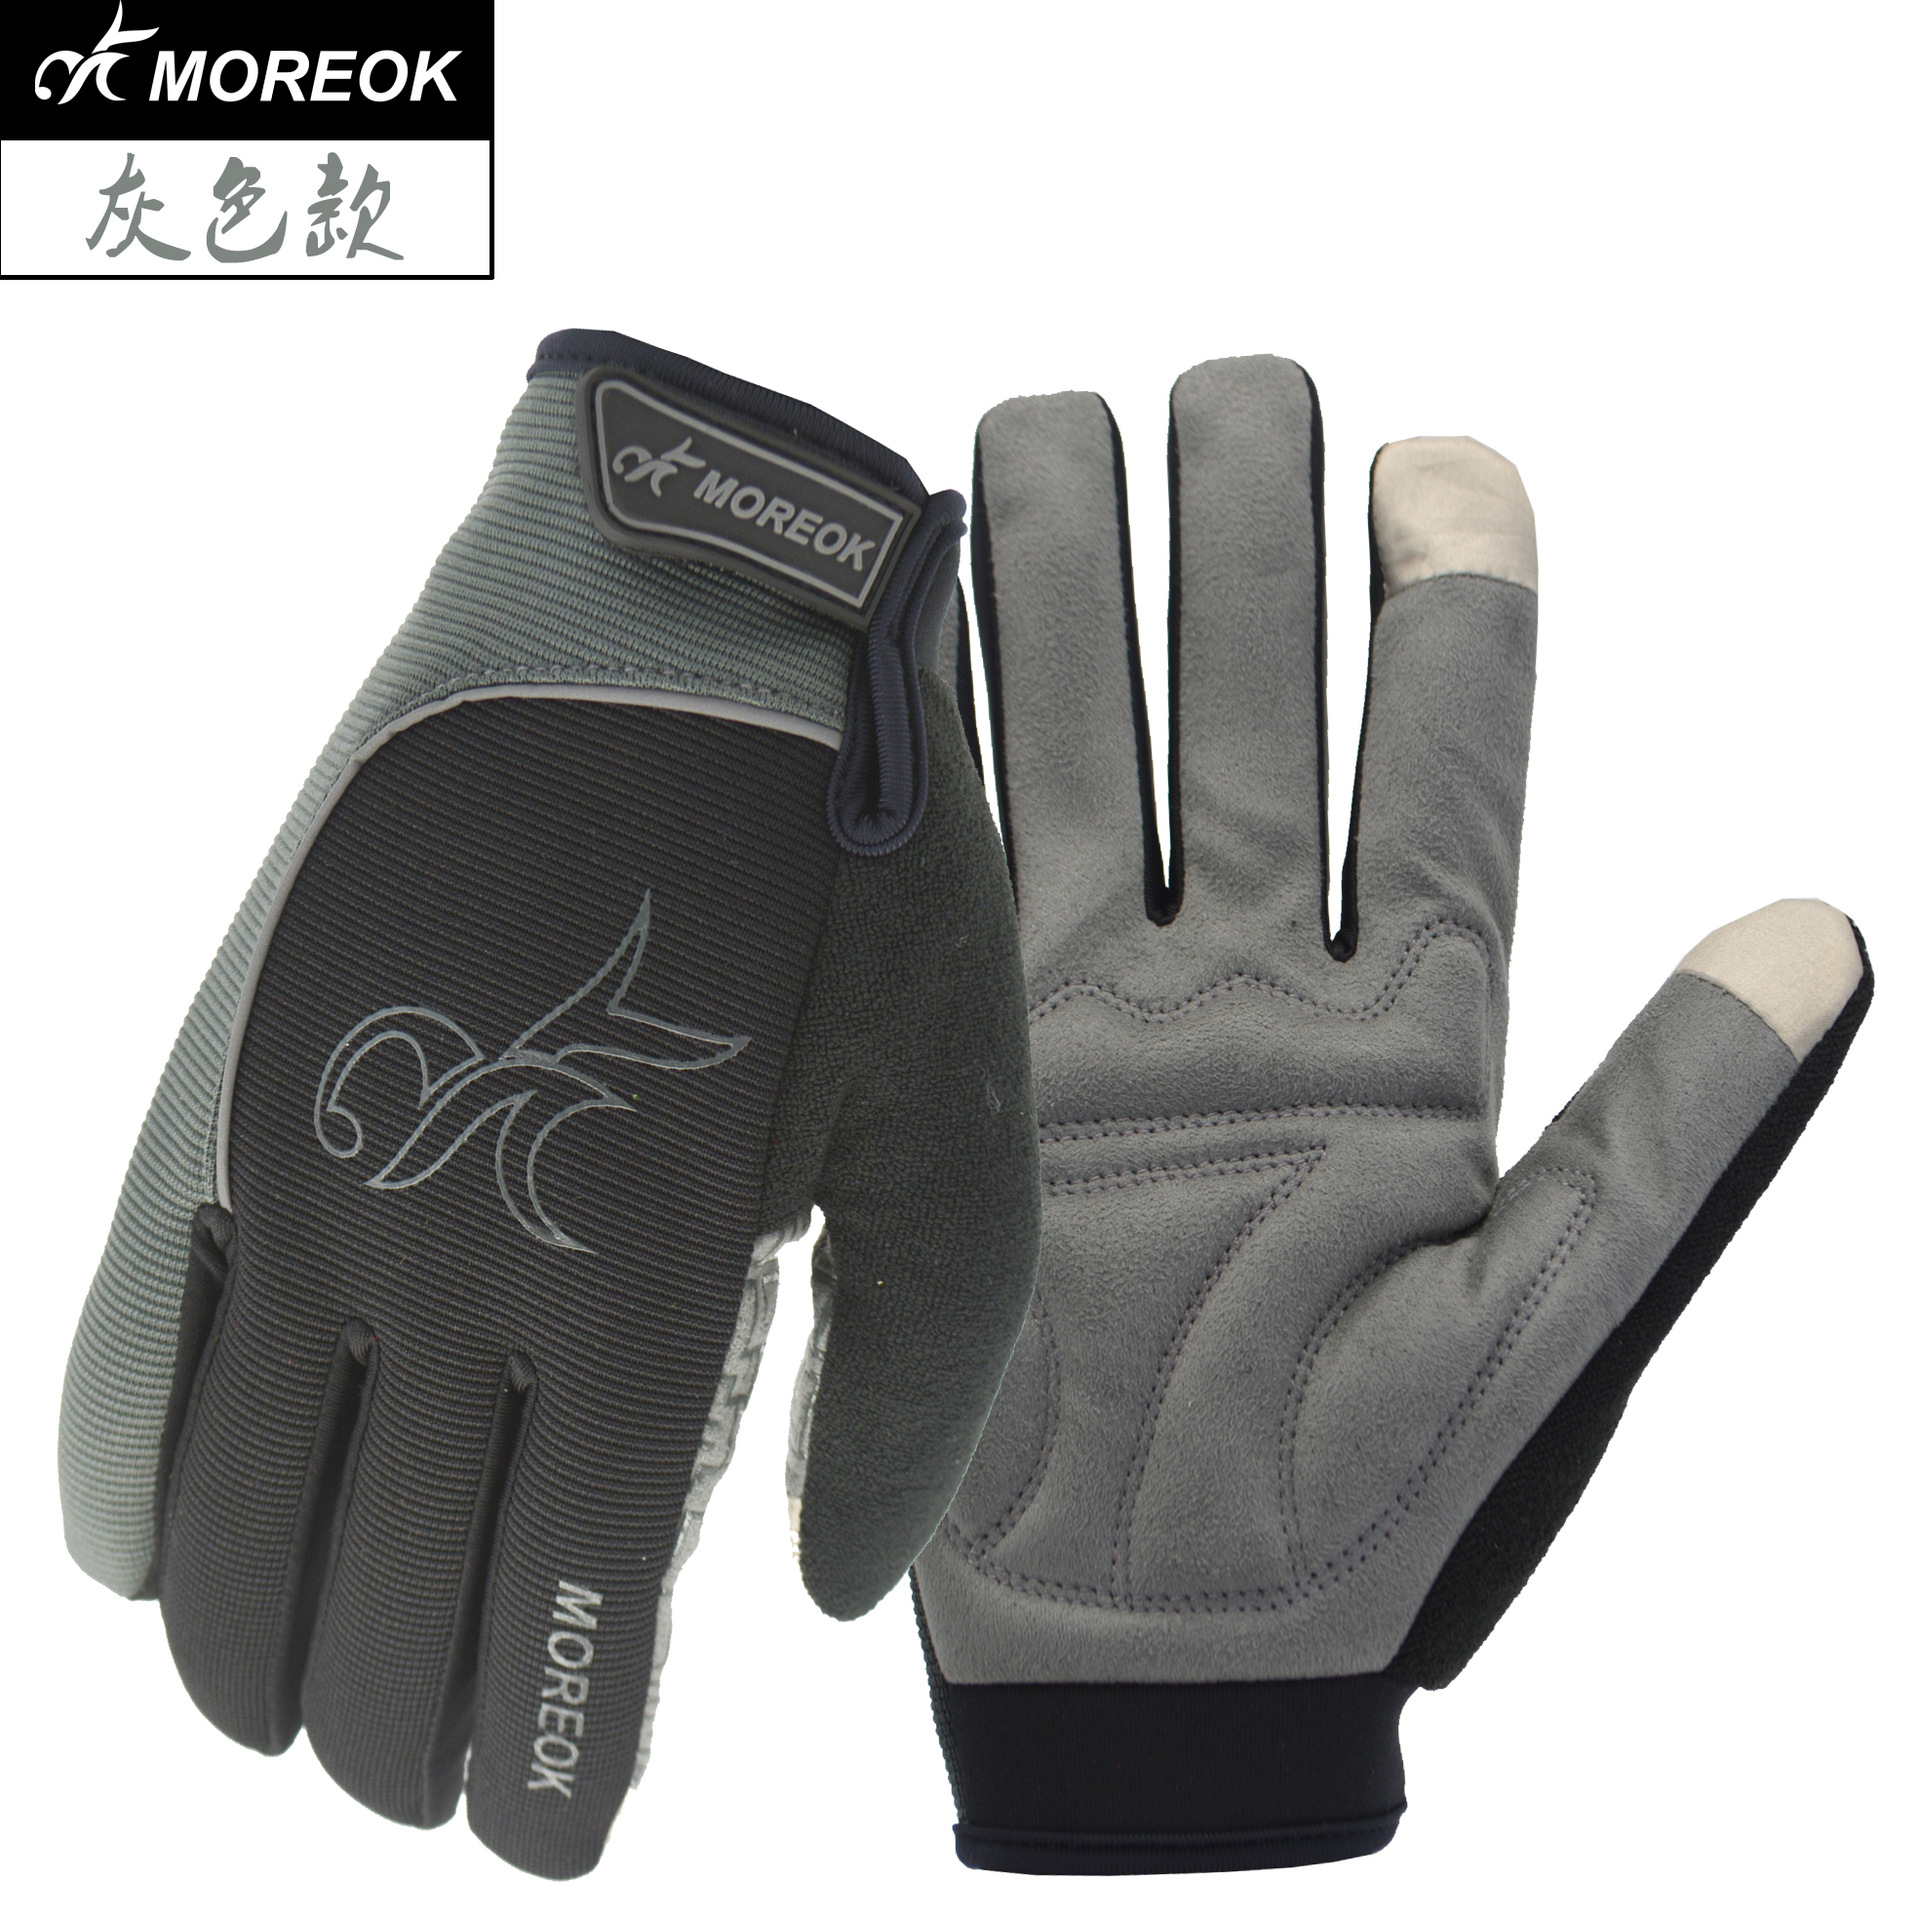 MOREOK Touch Screen Riding MTB road Bike Bicycle Gloves Thermal Warm Motorcycle Winter Autumn gloves Windproof Cycling Gloves